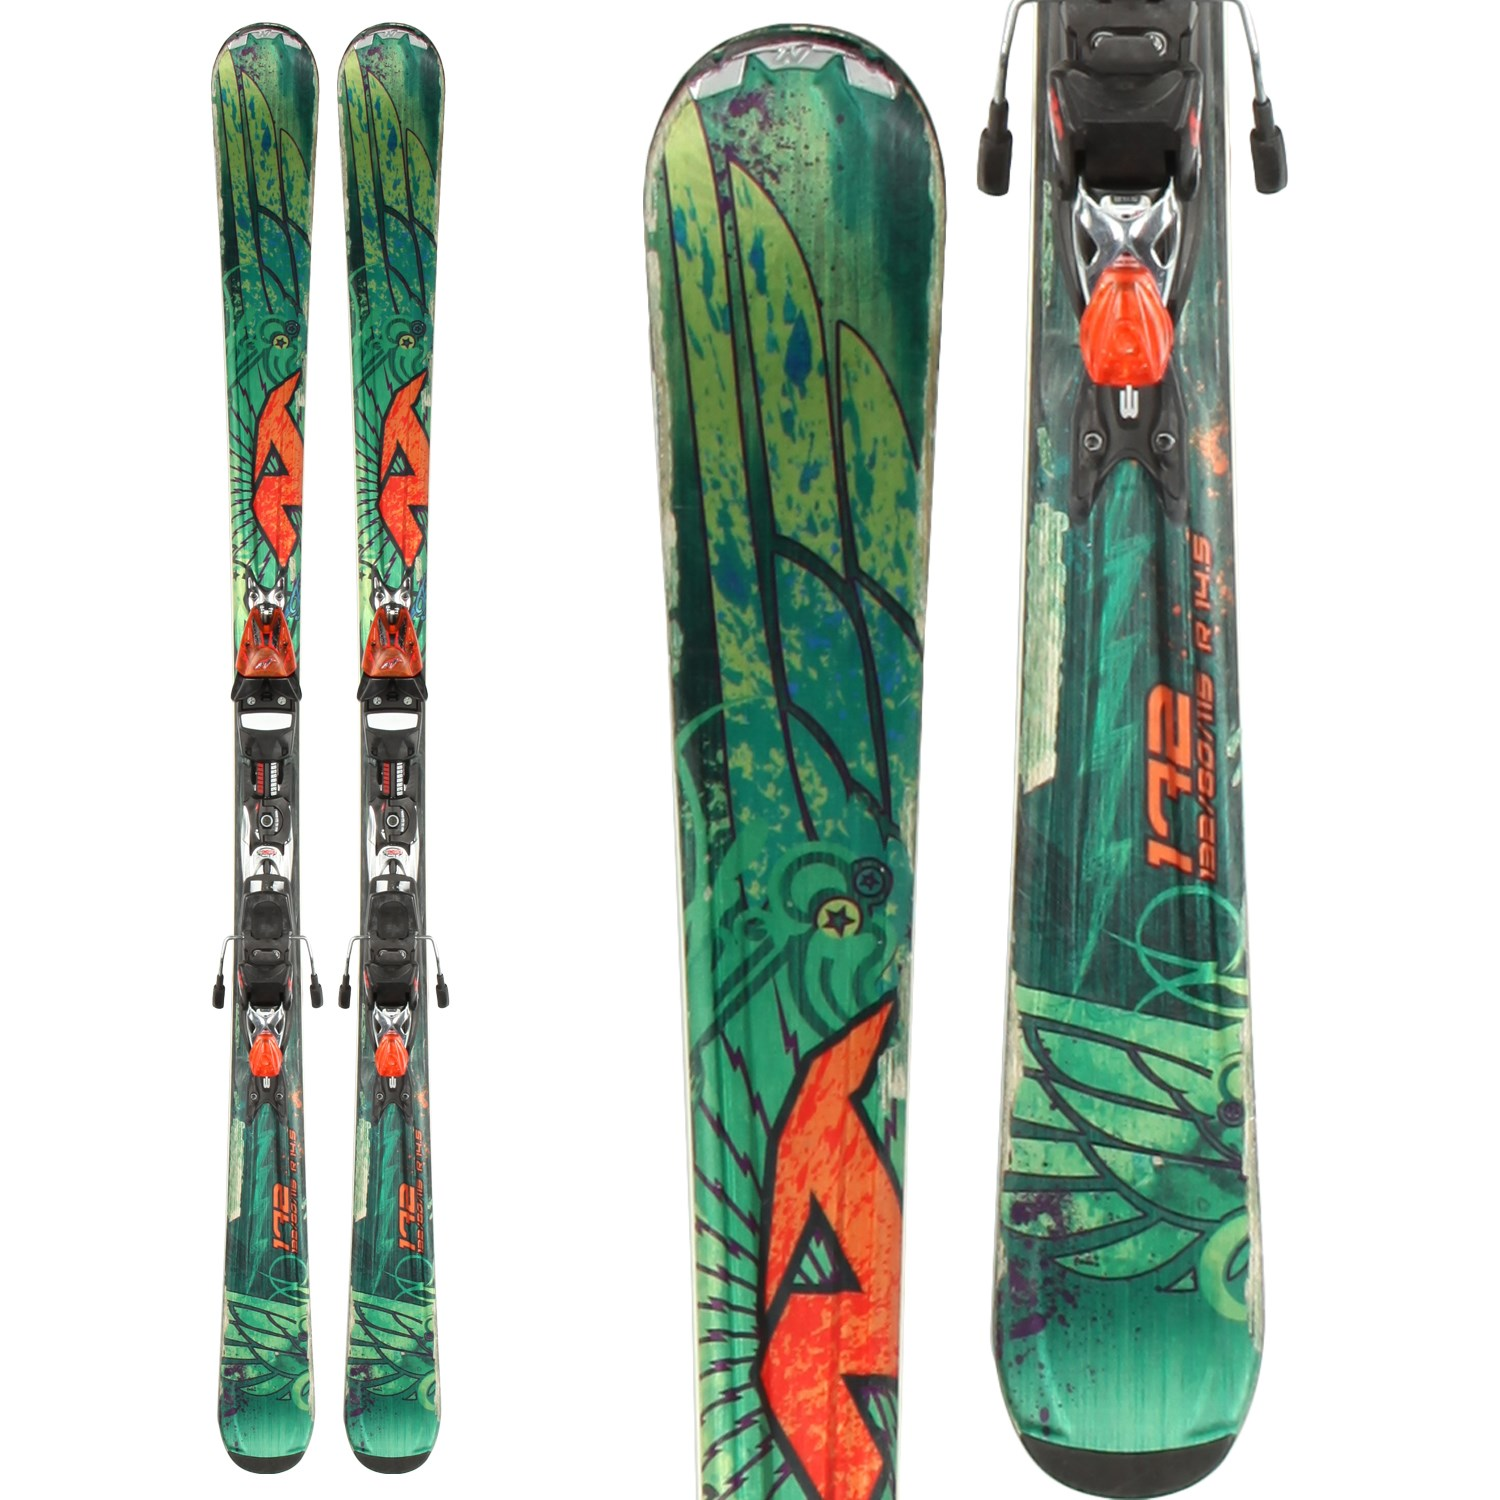 9b28158a Nordica Fire Arrow Skis + Exp 25 Demo Bindings - Used 2013